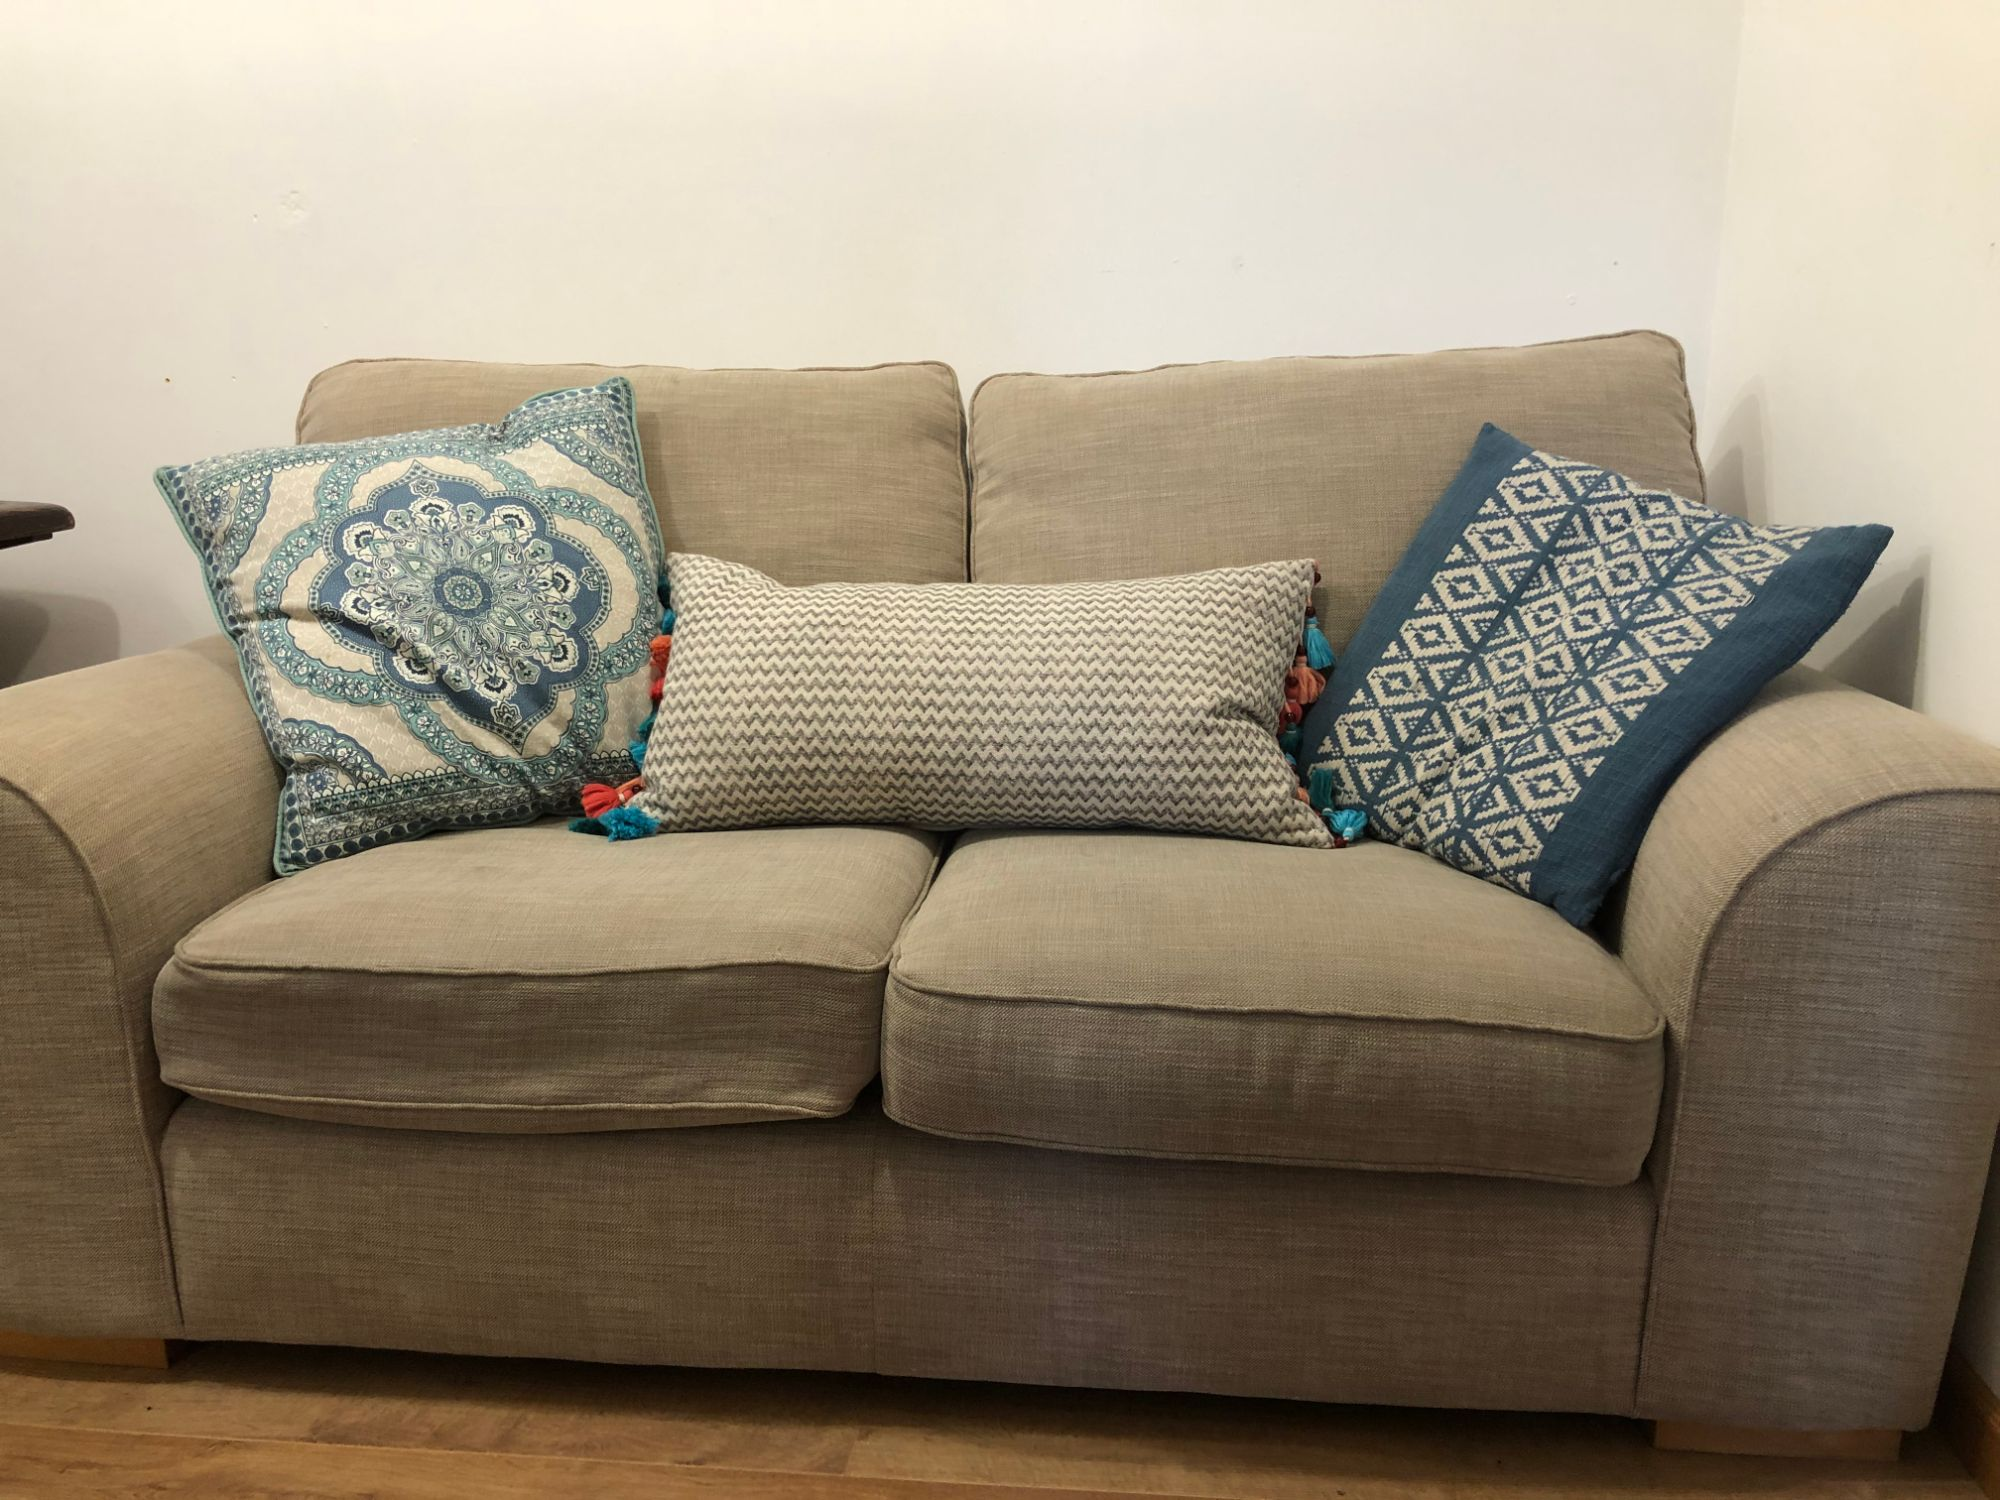 Free stock photo sofa cushions